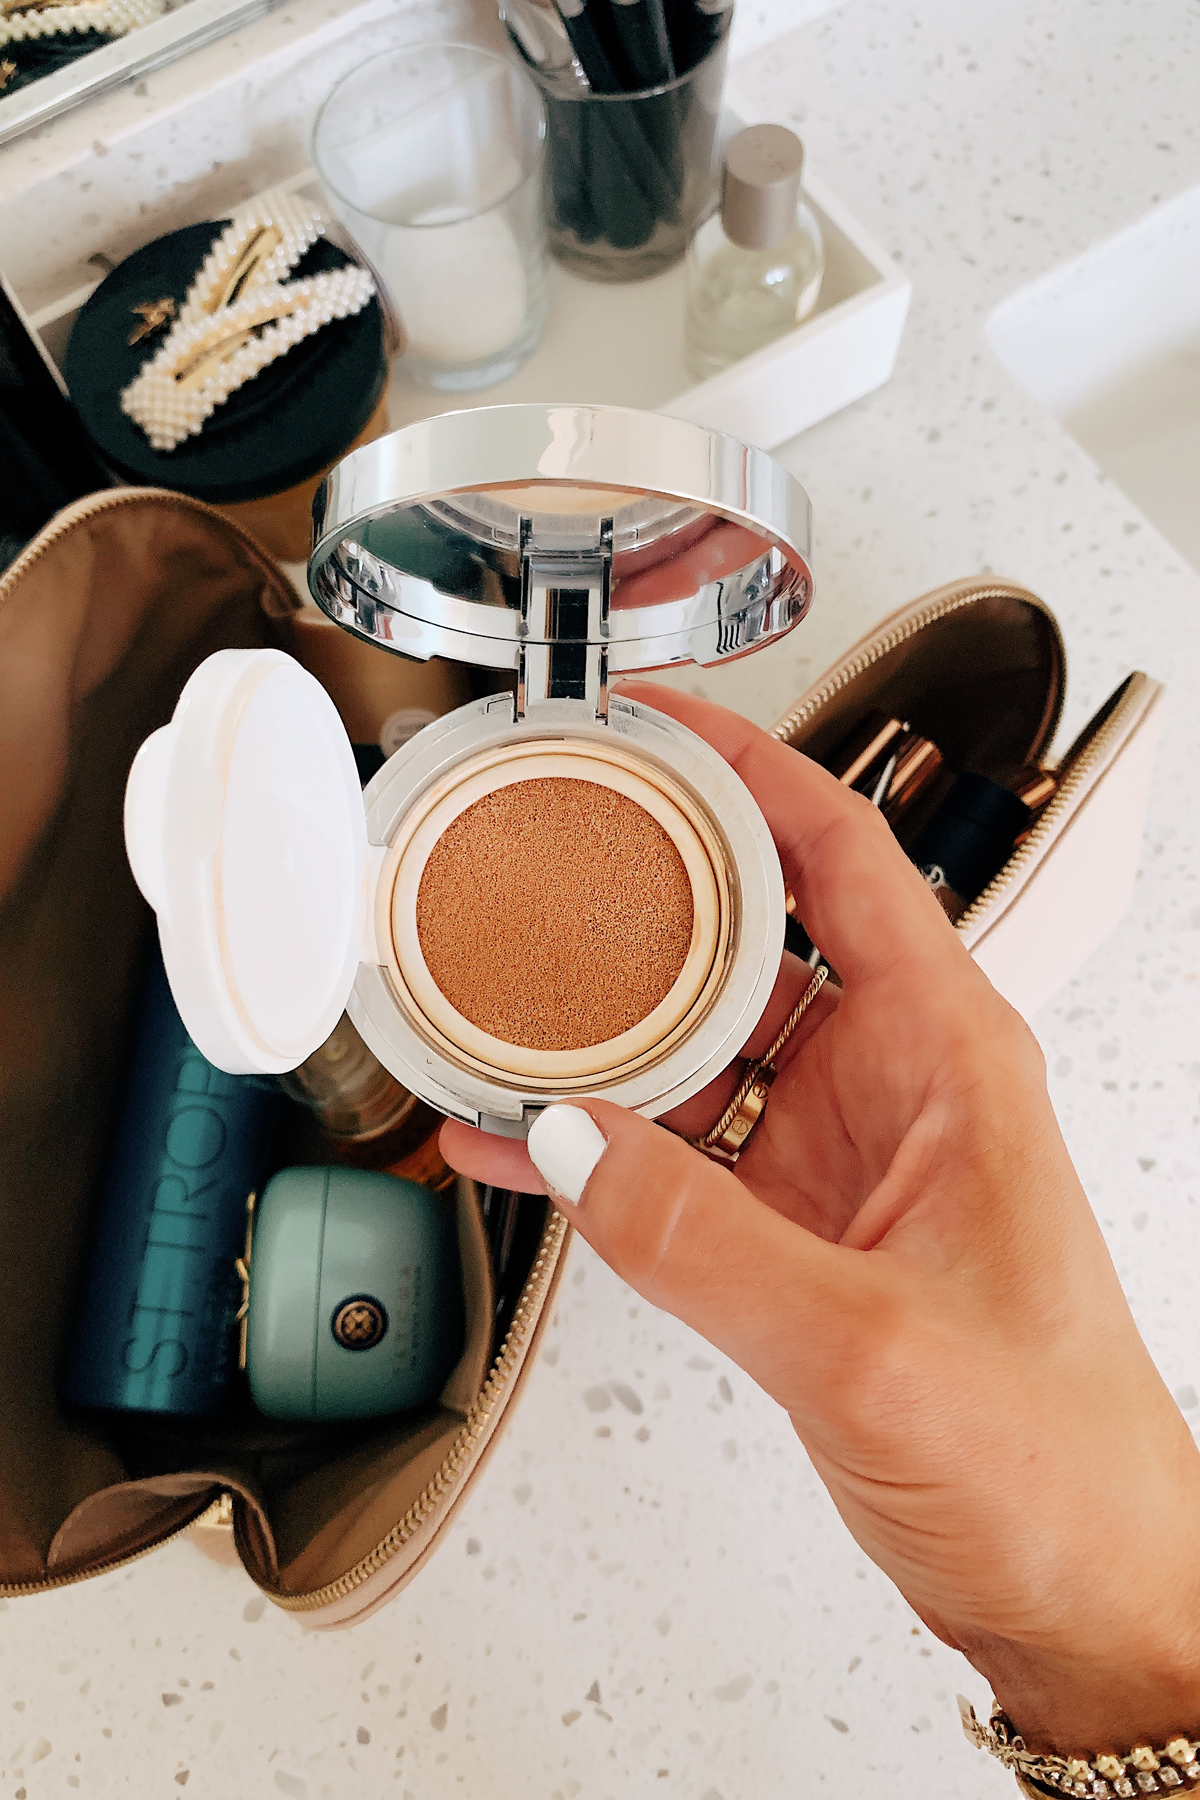 Fashion Jackson Sephora Summer Beauty Event Products Amore Pacific Compact Cushion 1